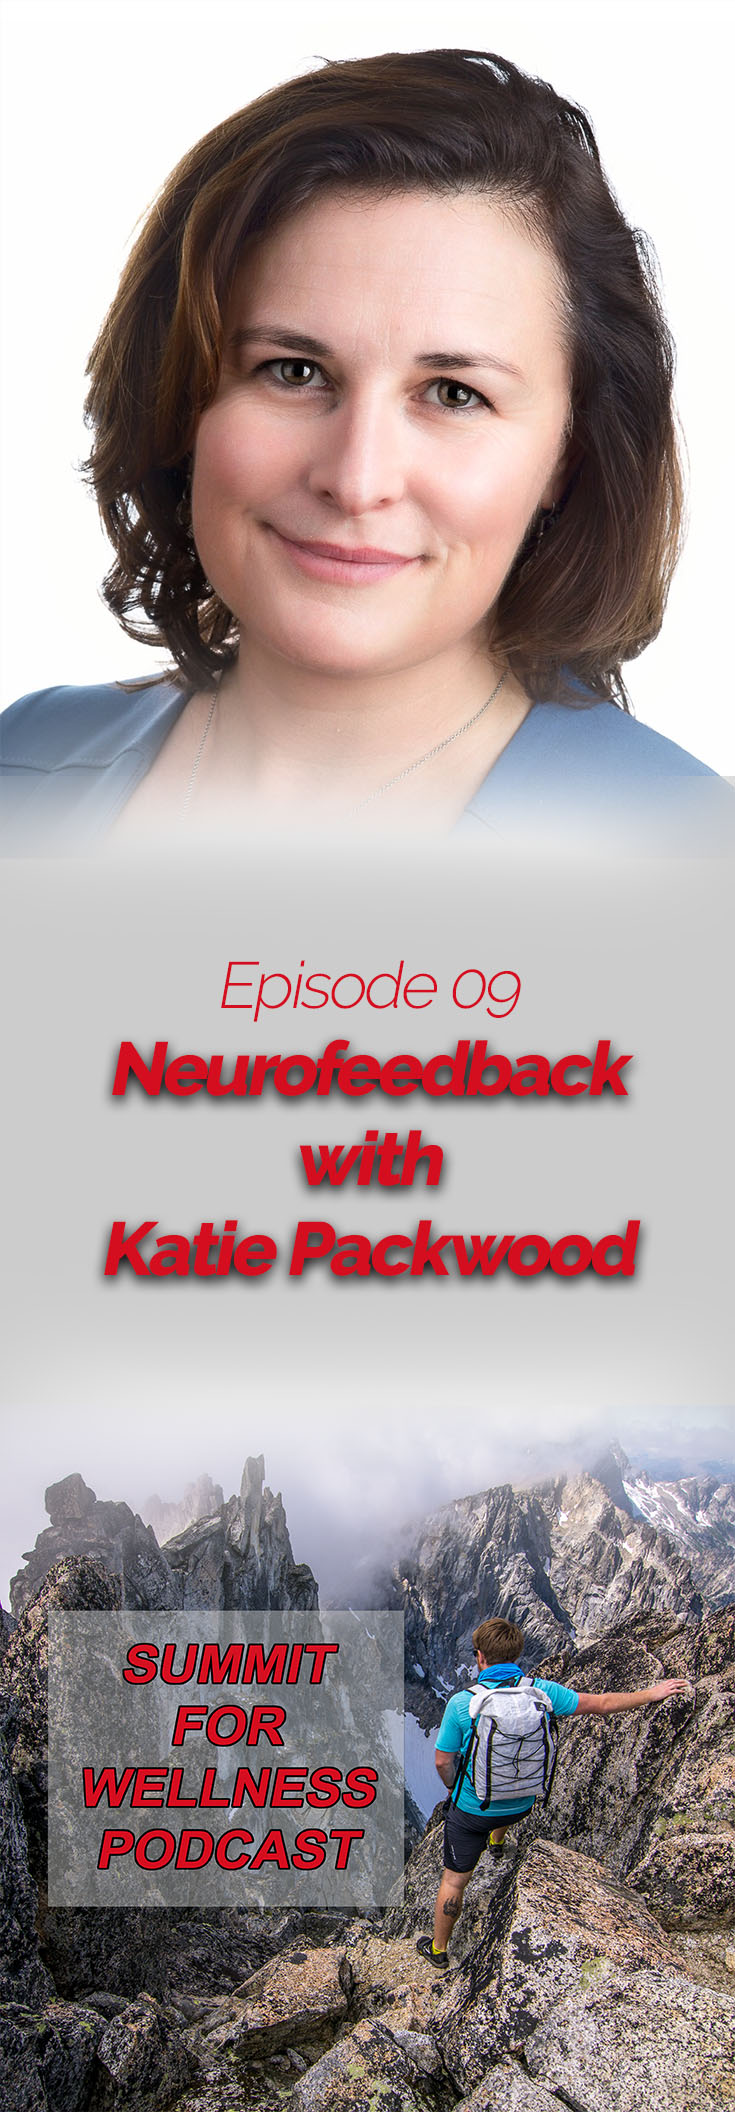 Katie Packwood discusses how Neurofeedback can improve the brains ability to process stress.